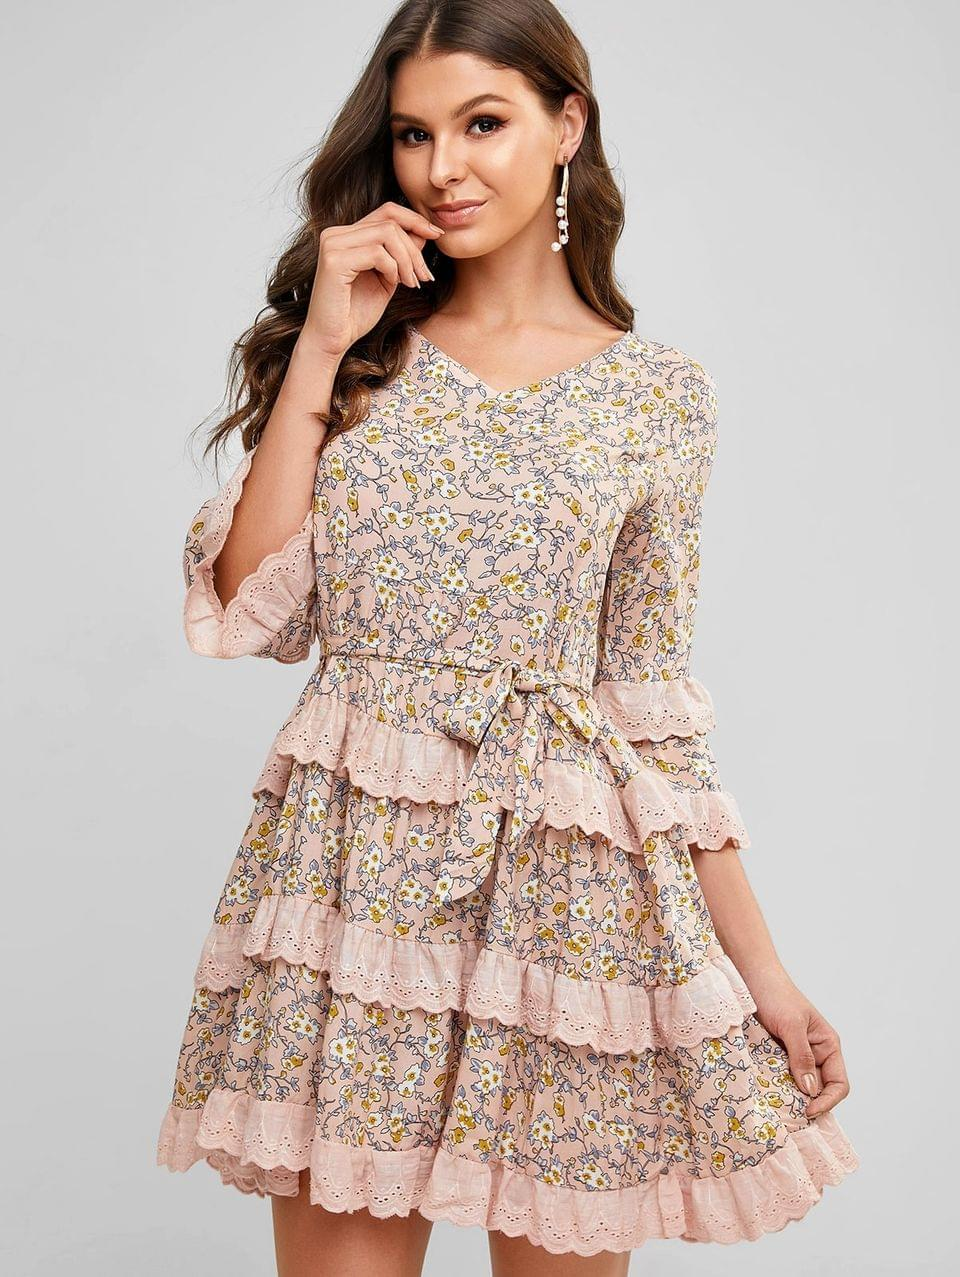 Women's Ditsy Print Broderie Anglaise Ruffle Smock Dress - Champagne L